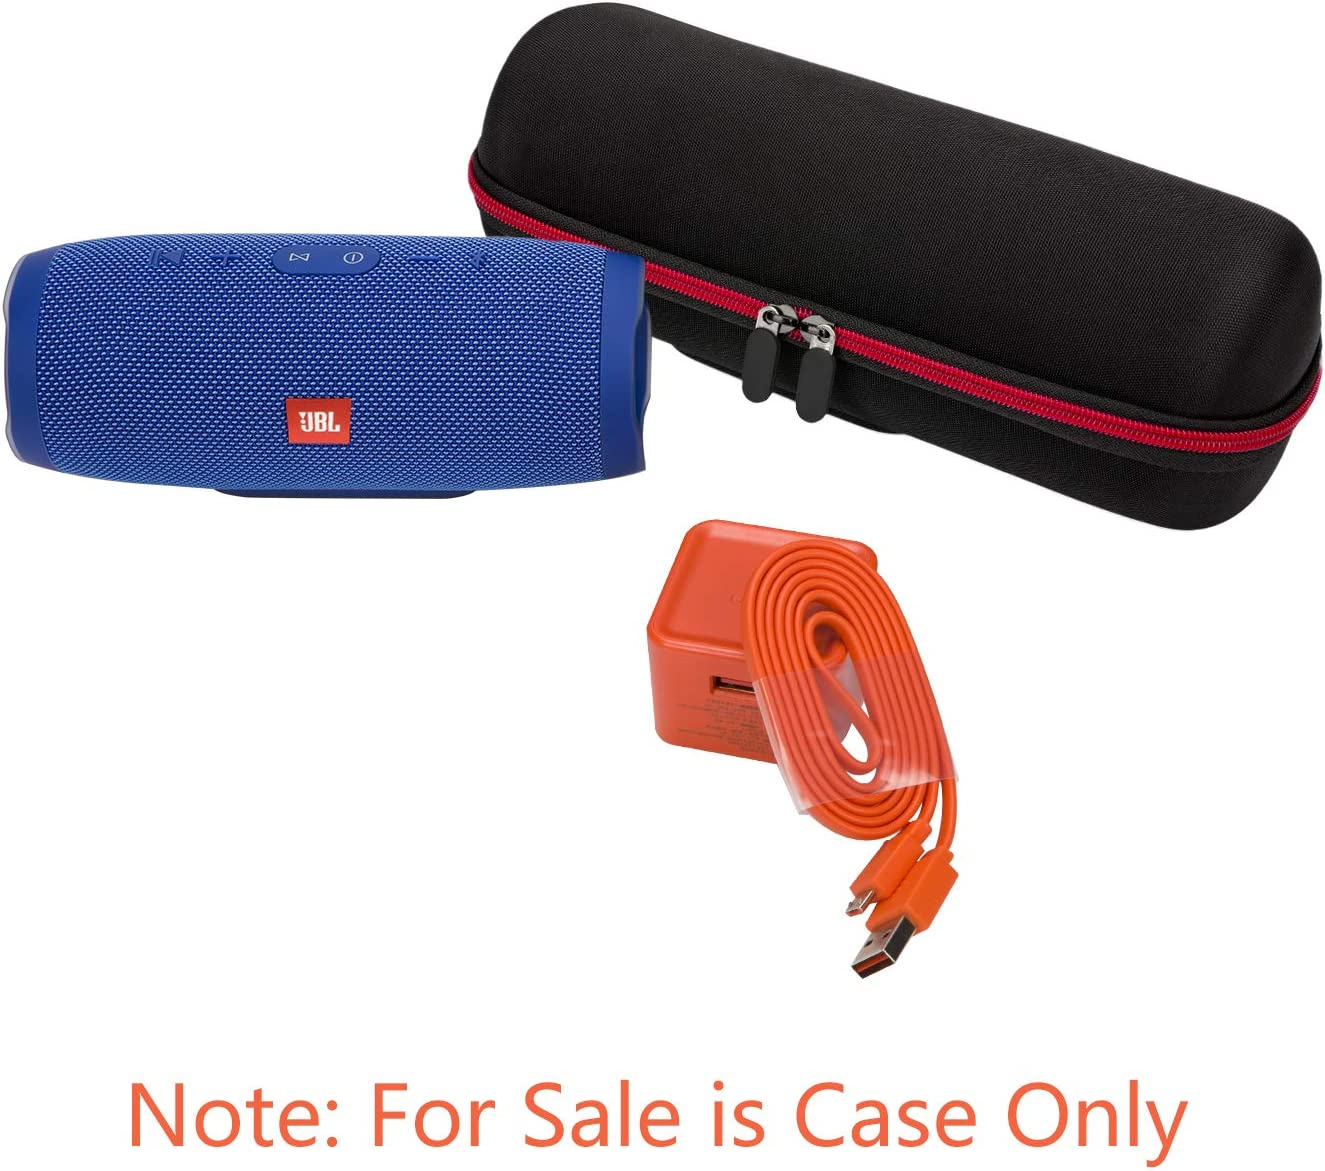 Hard Strong Travel Carrying Storage Bag(JBL-CHARGE3-CASE ONLY) JONGEN Case for JBL Charge 3 Waterproof Portable Bluetooth Speaker